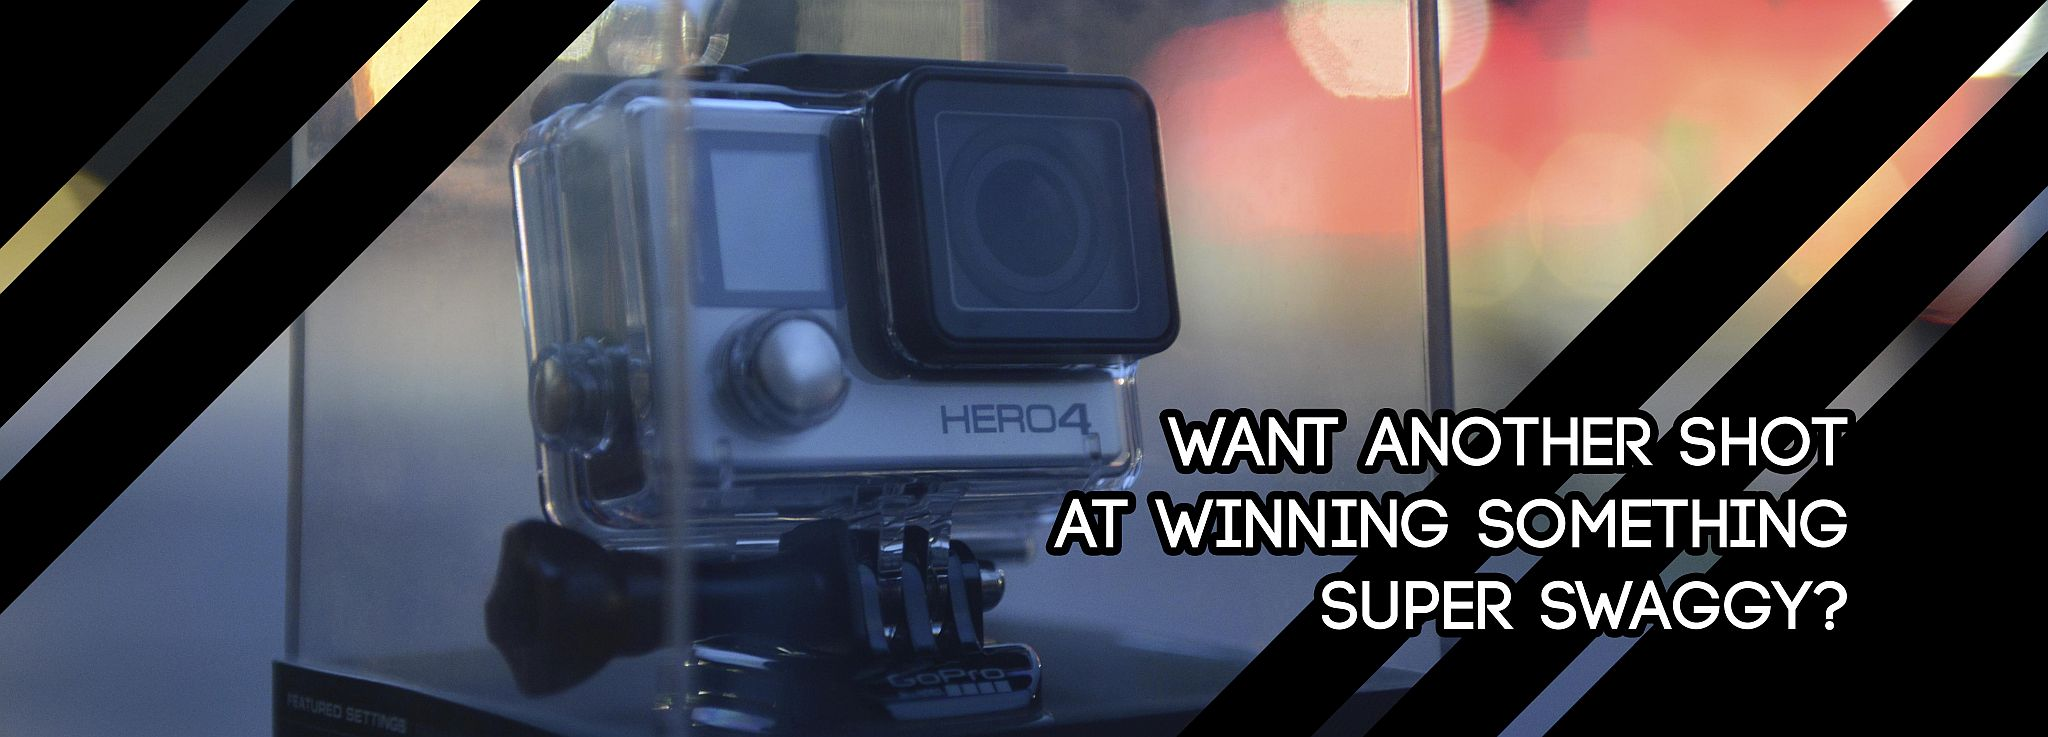 Amped Airsoft GoPro Give Away